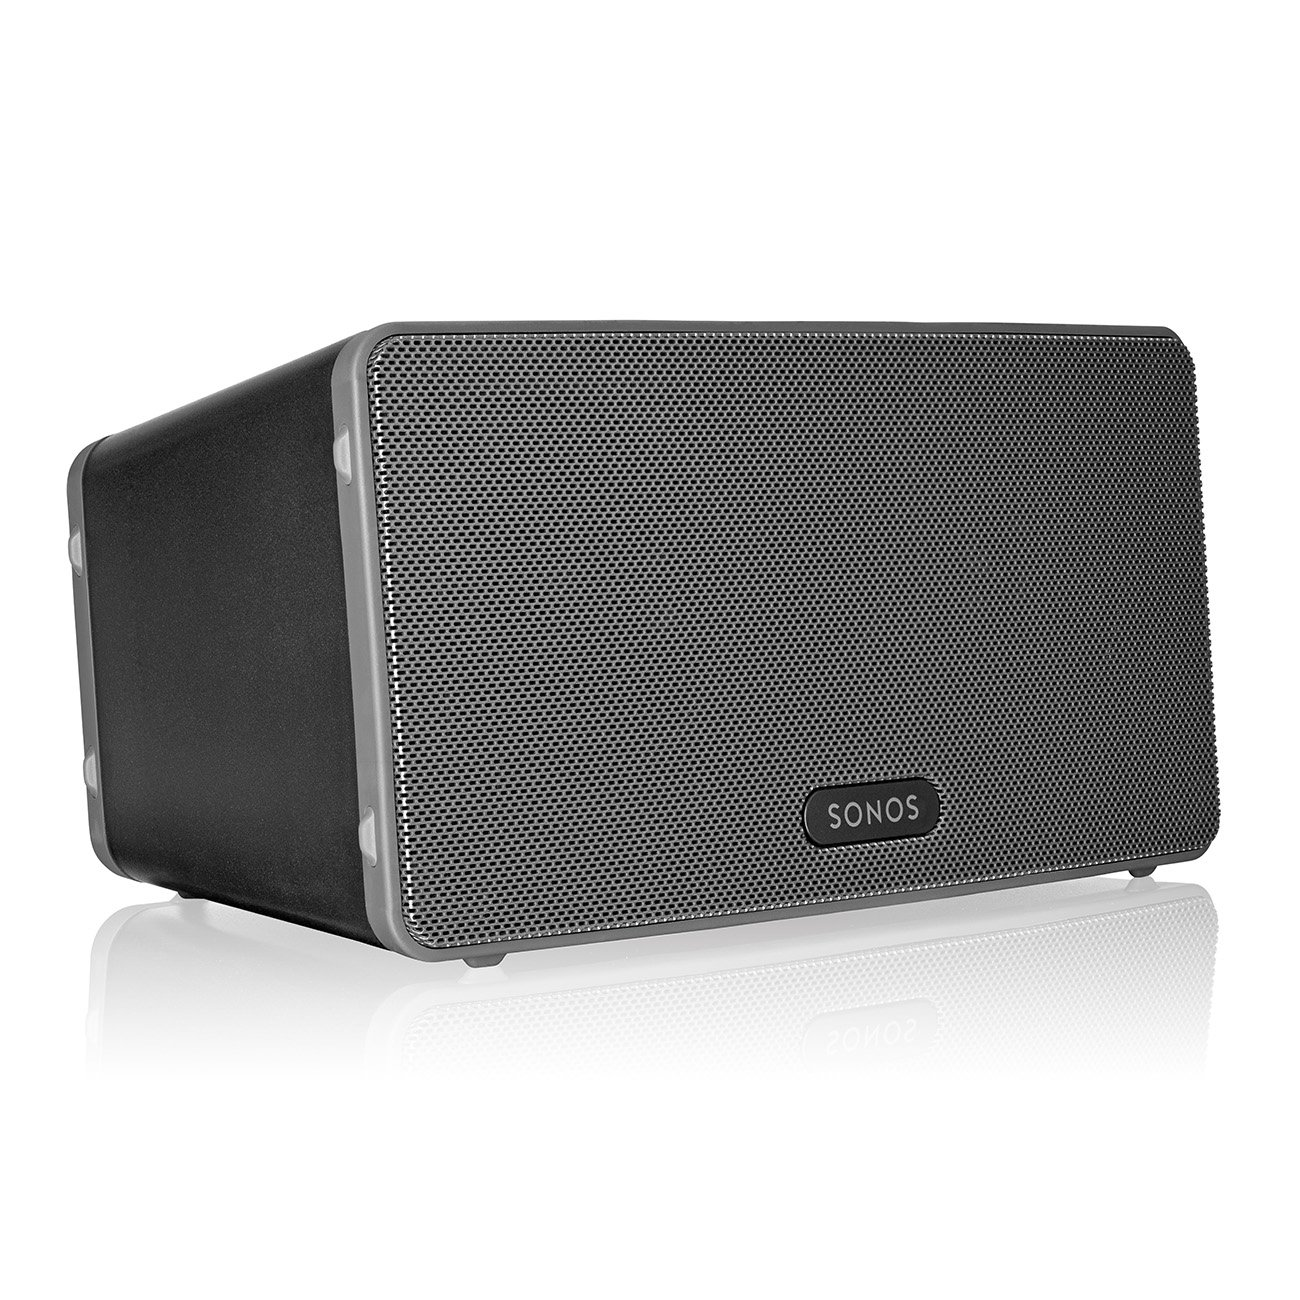 Sonos Play: 3 – Mid-Sized Wireless Smart Home Speaker for Streaming Music, Amazon Certified and Works with Alexa. (Black)